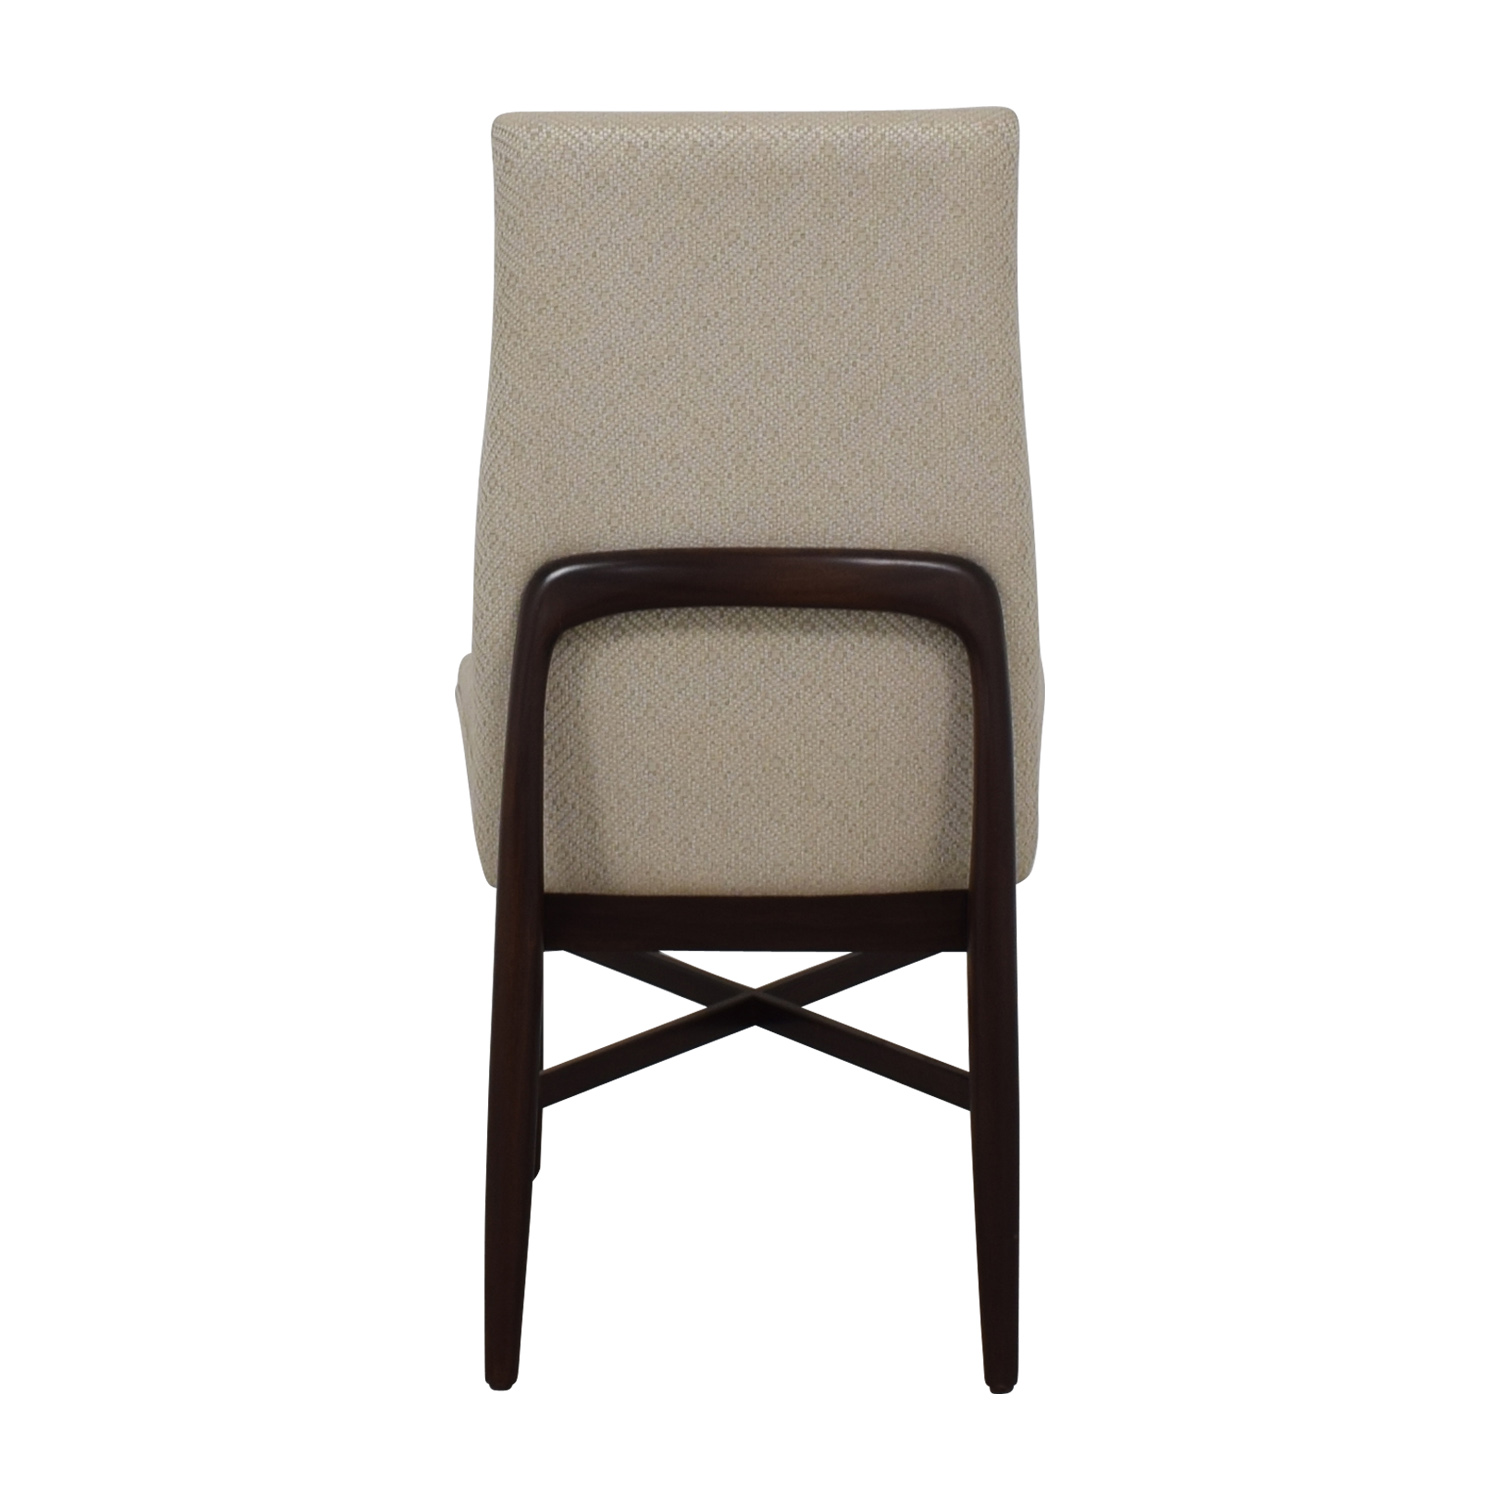 Furniture Masters Modern Mid Century Accent Chair / Accent Chairs